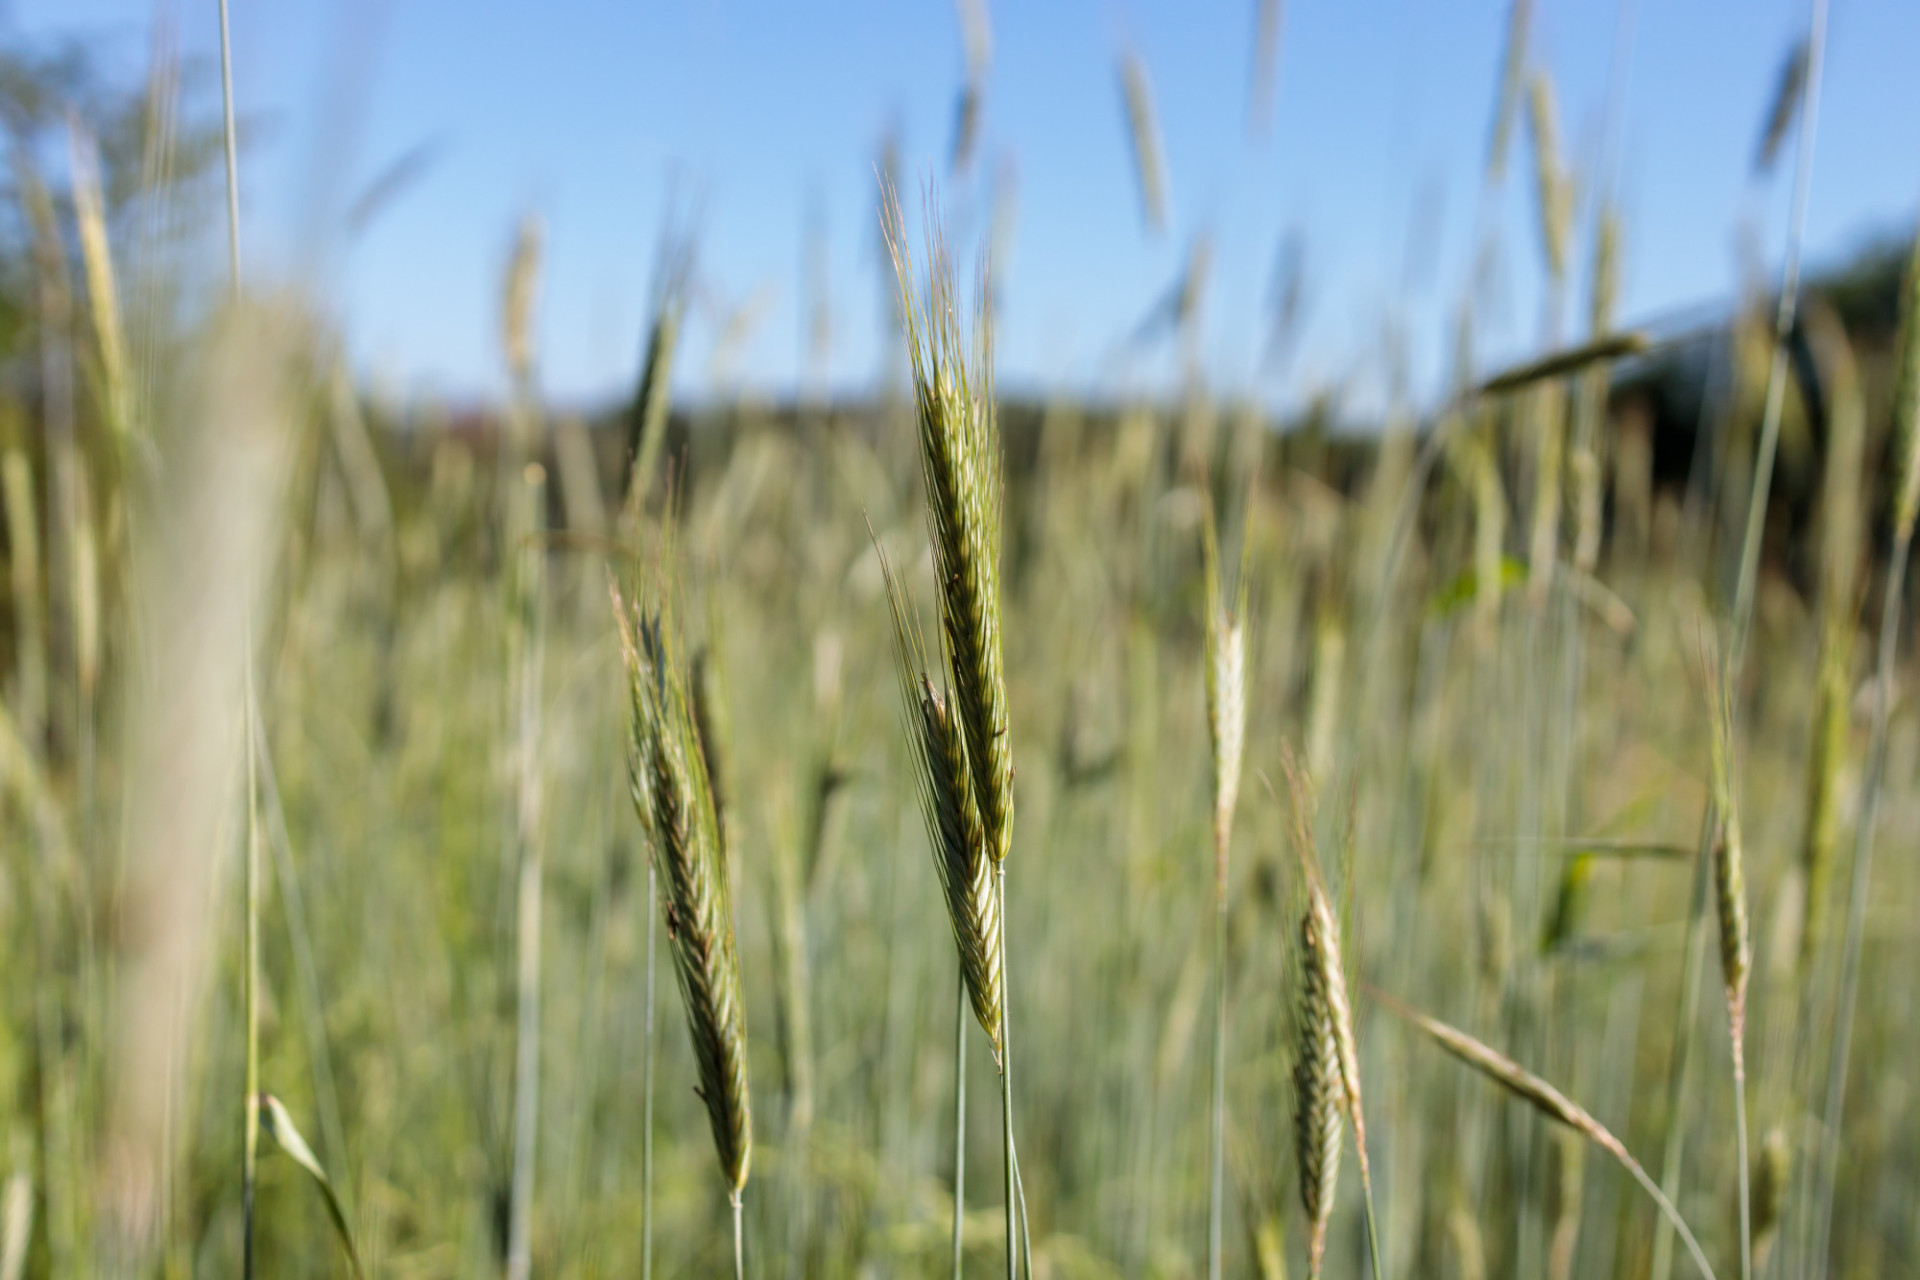 Rye field thrives in early summer